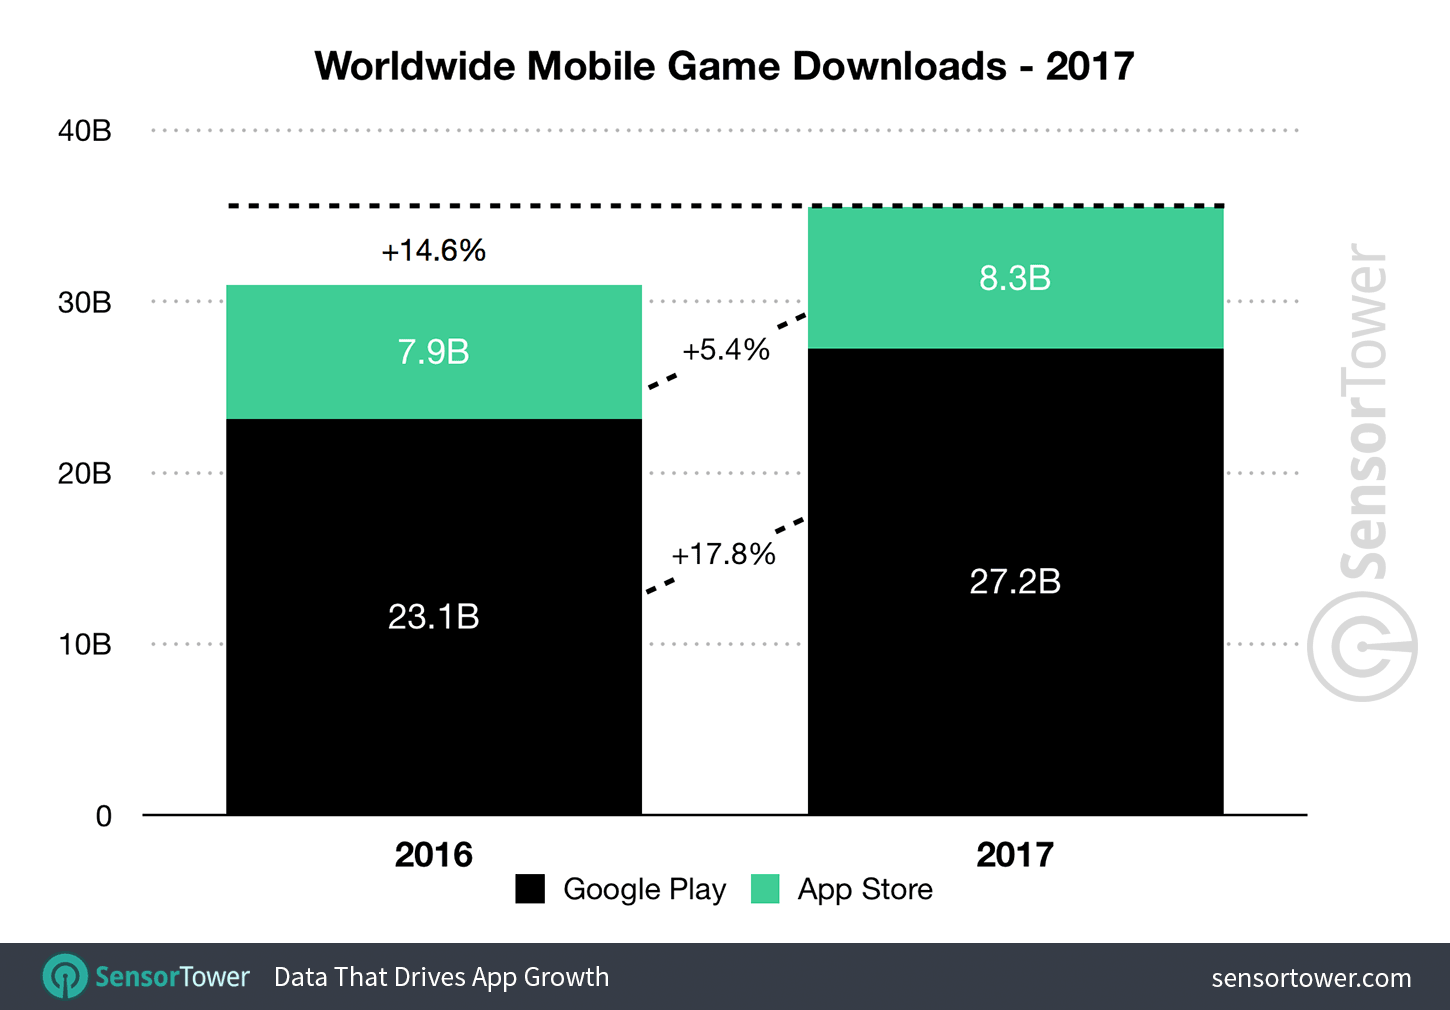 2017 Mobile Game Downloads